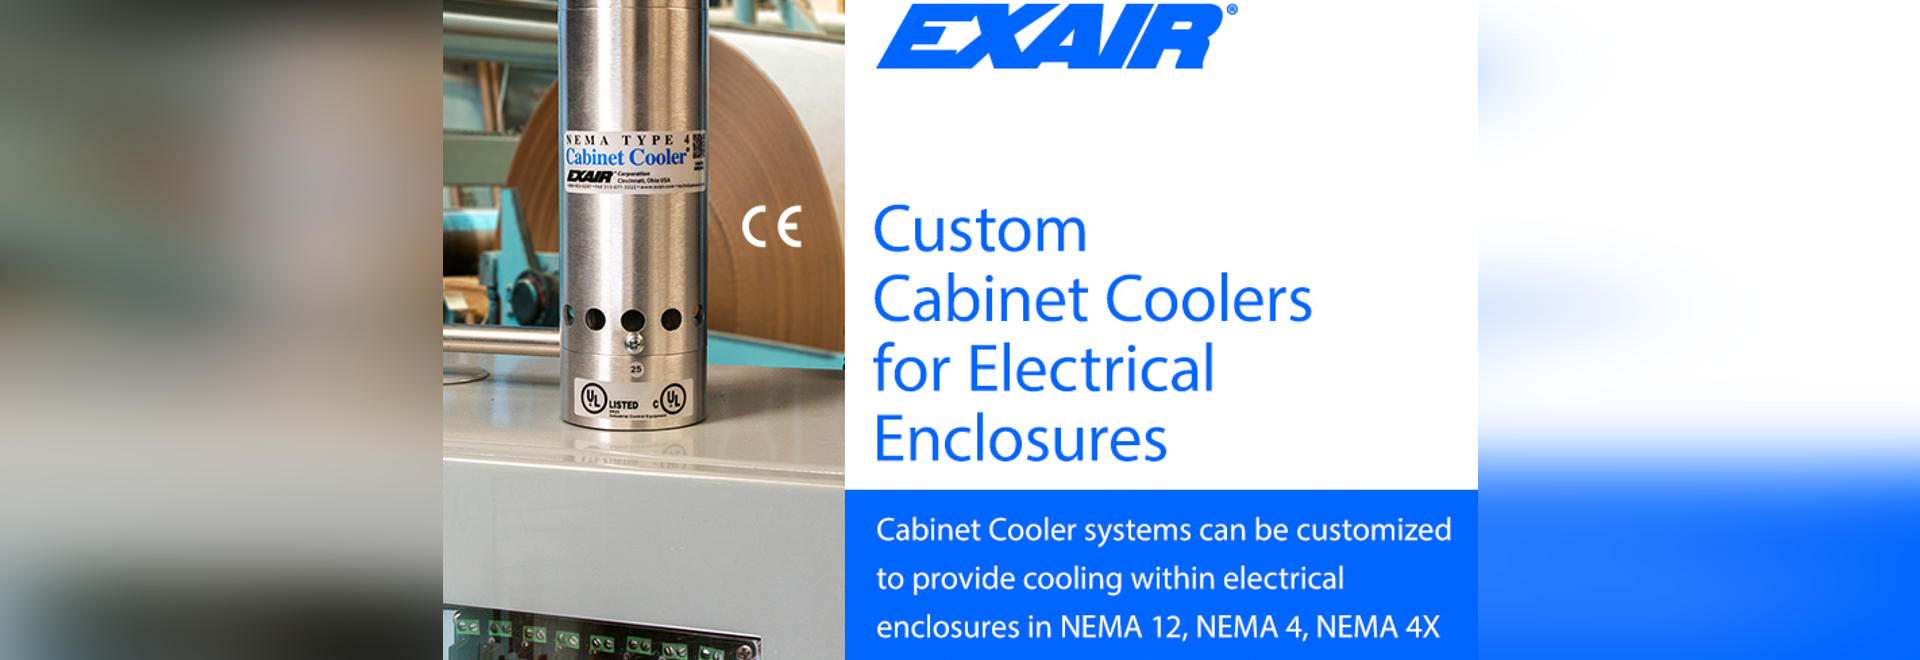 Custom Cabinet Coolers for Electrical Enclosures